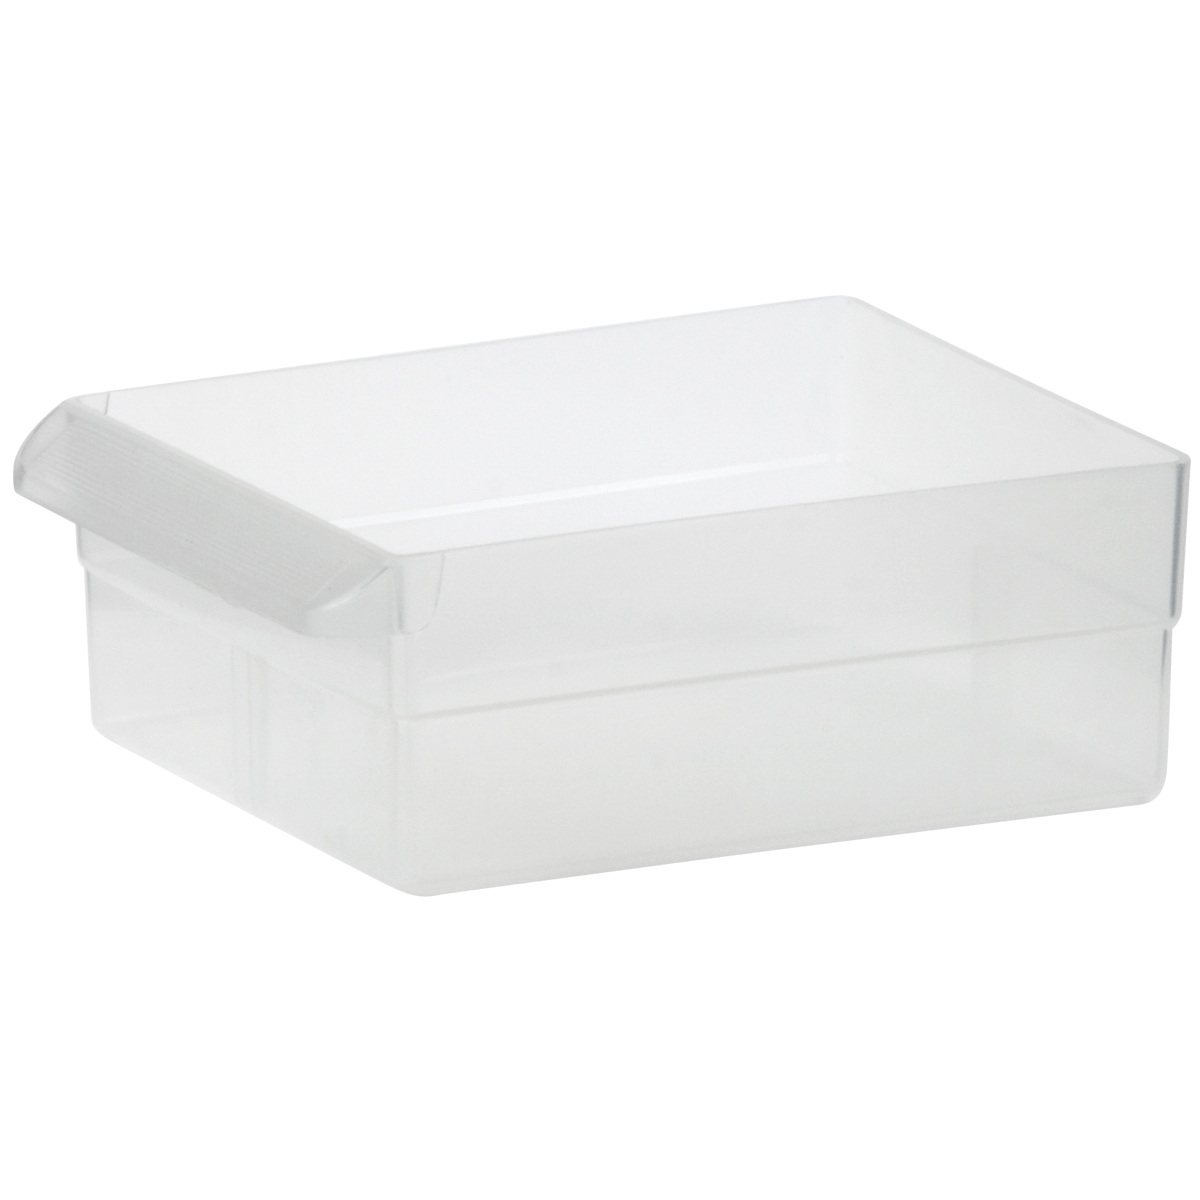 2070 Replacement Cabinet Drawers